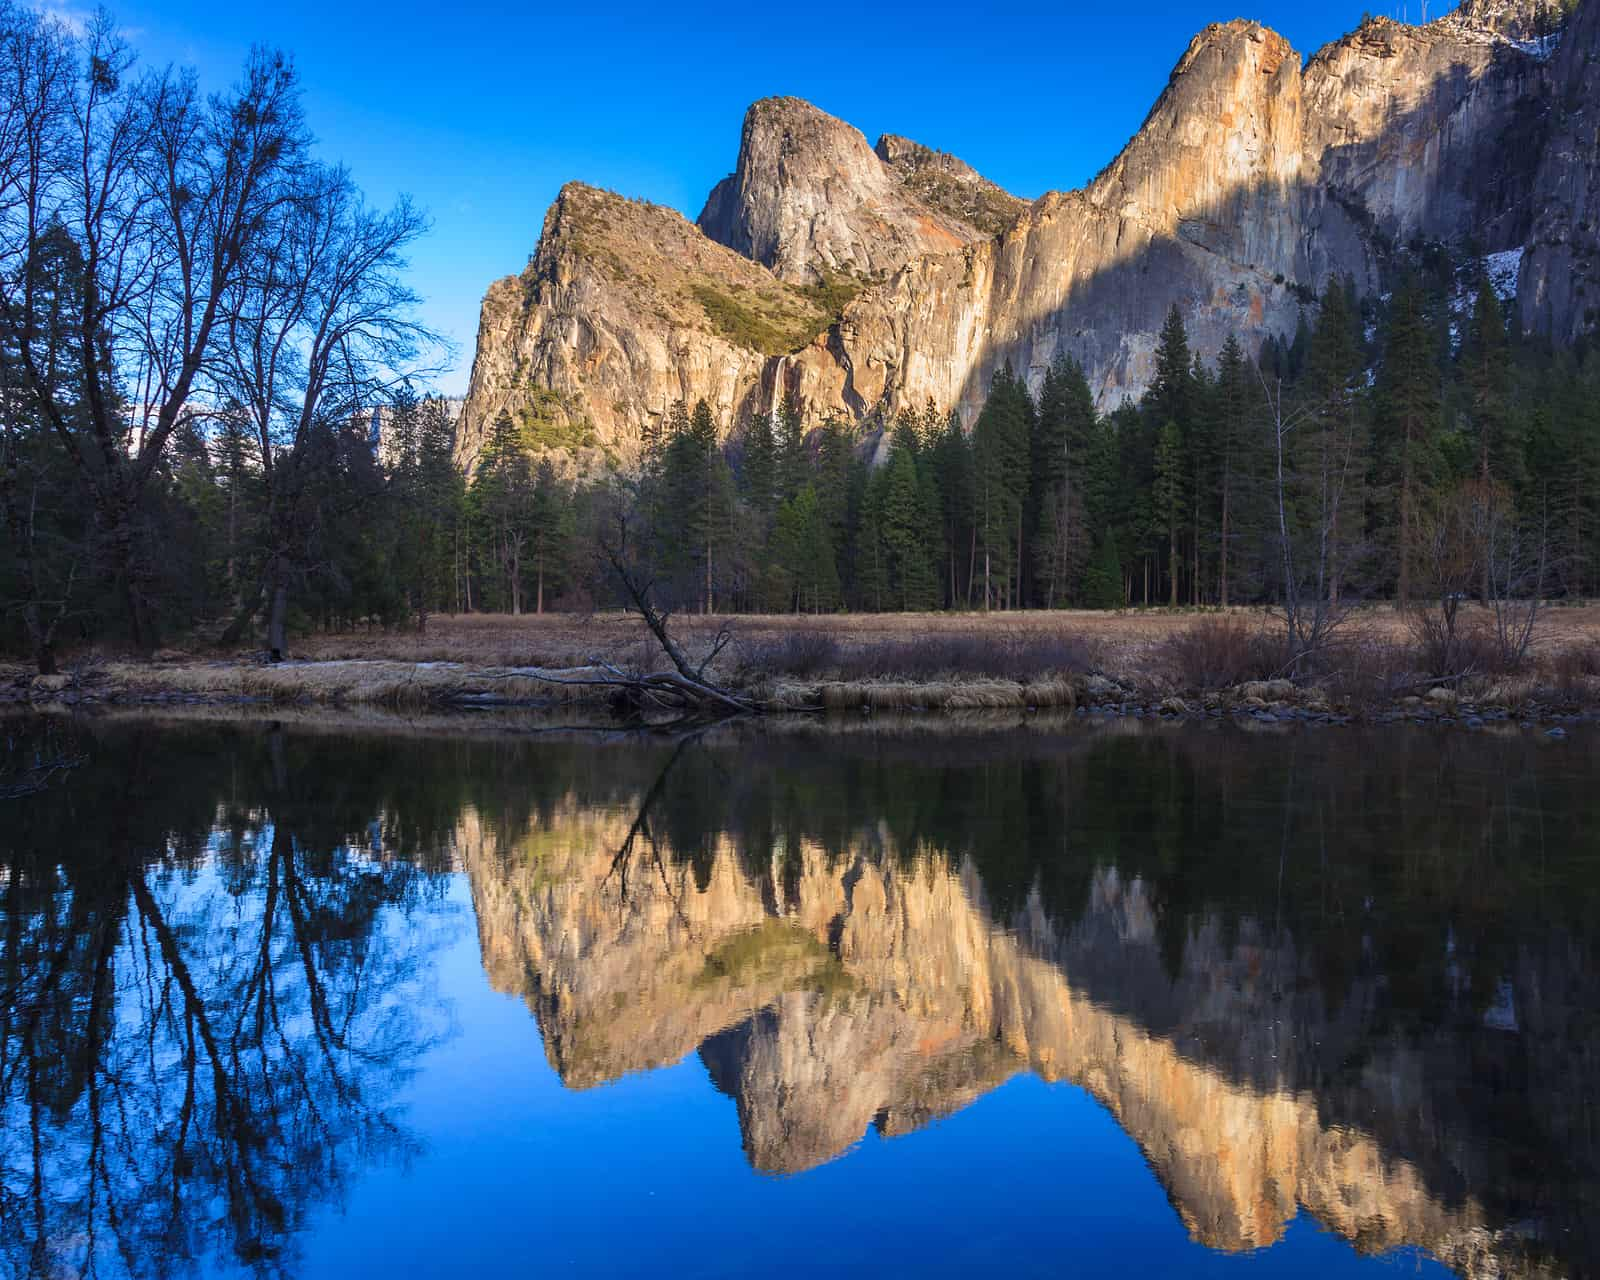 https://www.theparadigmrealtygroup.com/wp-content/uploads/2017/10/bigstock-Cathedral-Rocks-Reflections-40631113.jpg